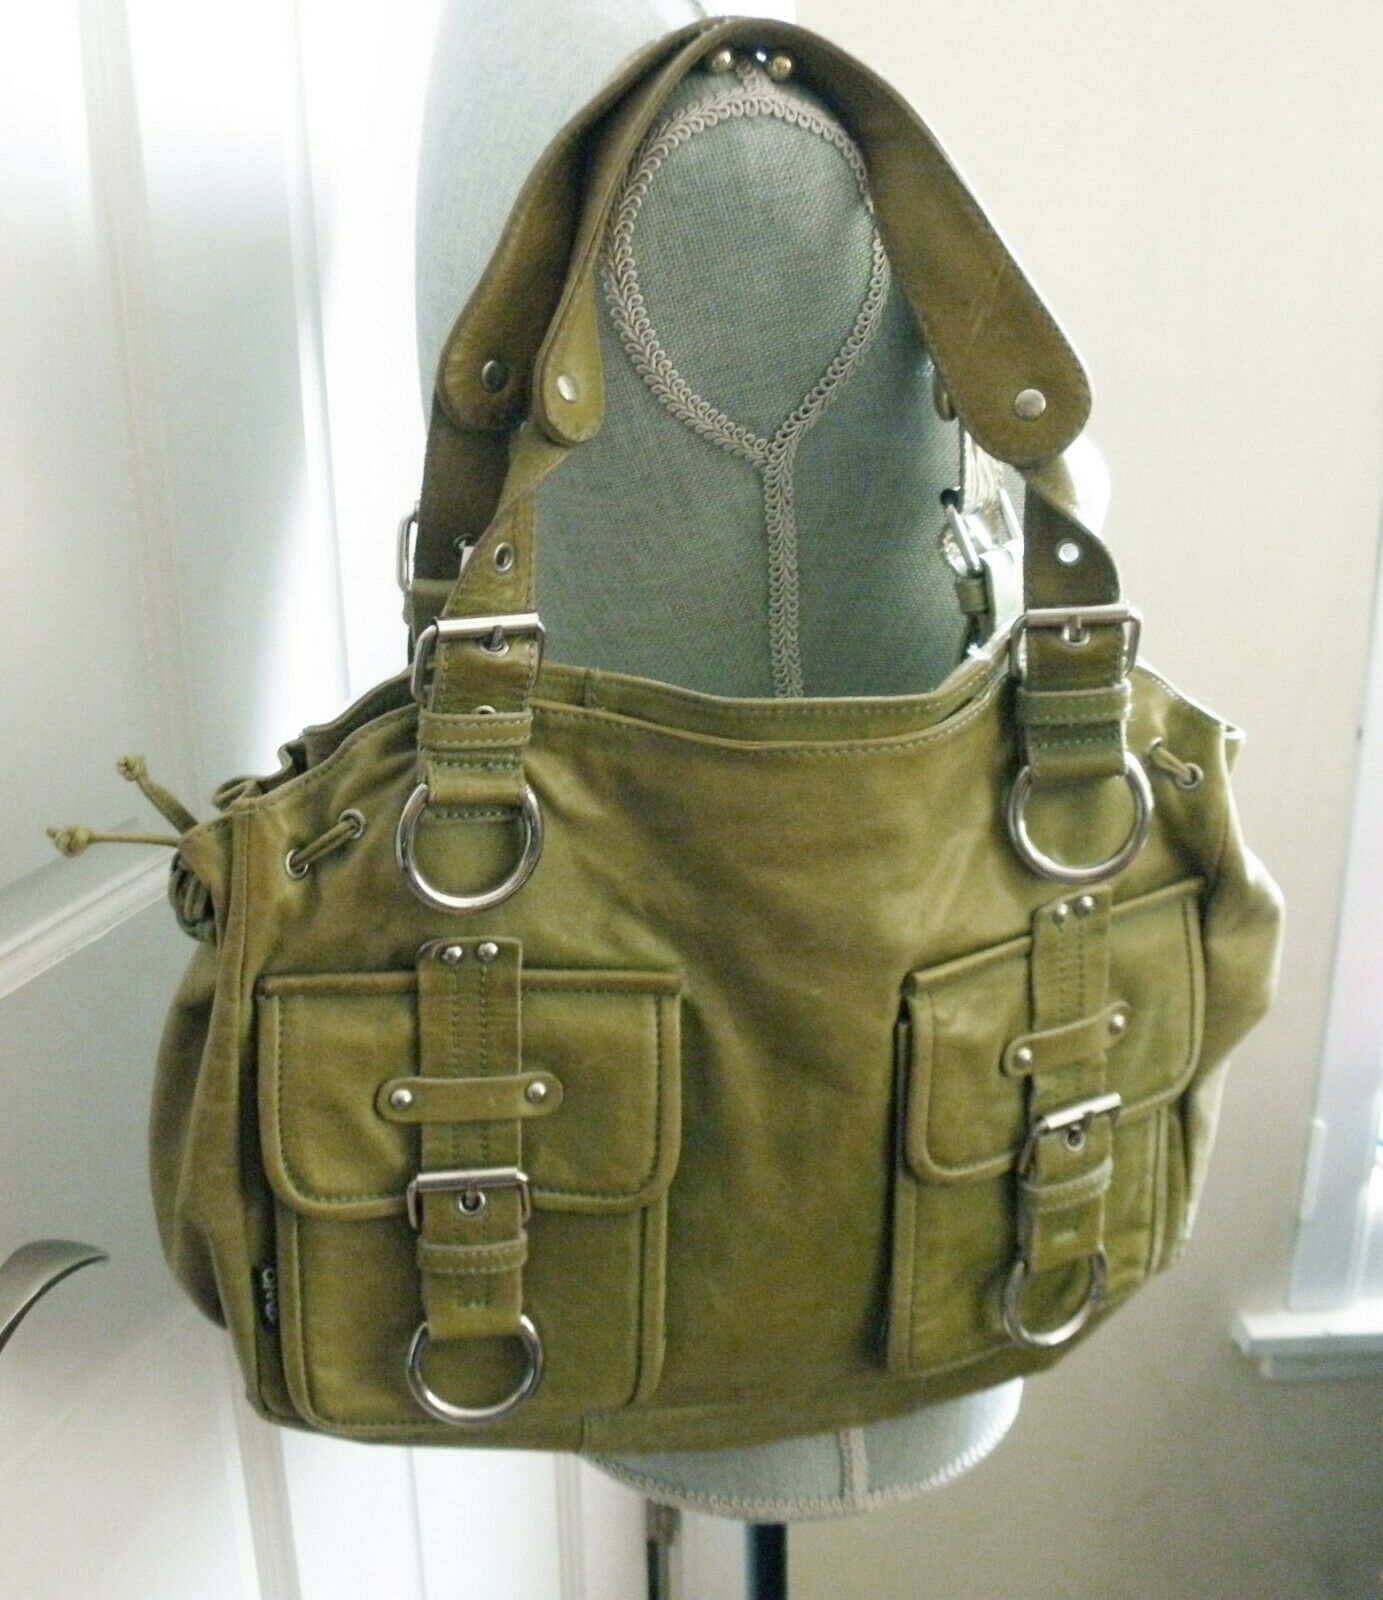 TANO Green Leather tote Satchel large x-large